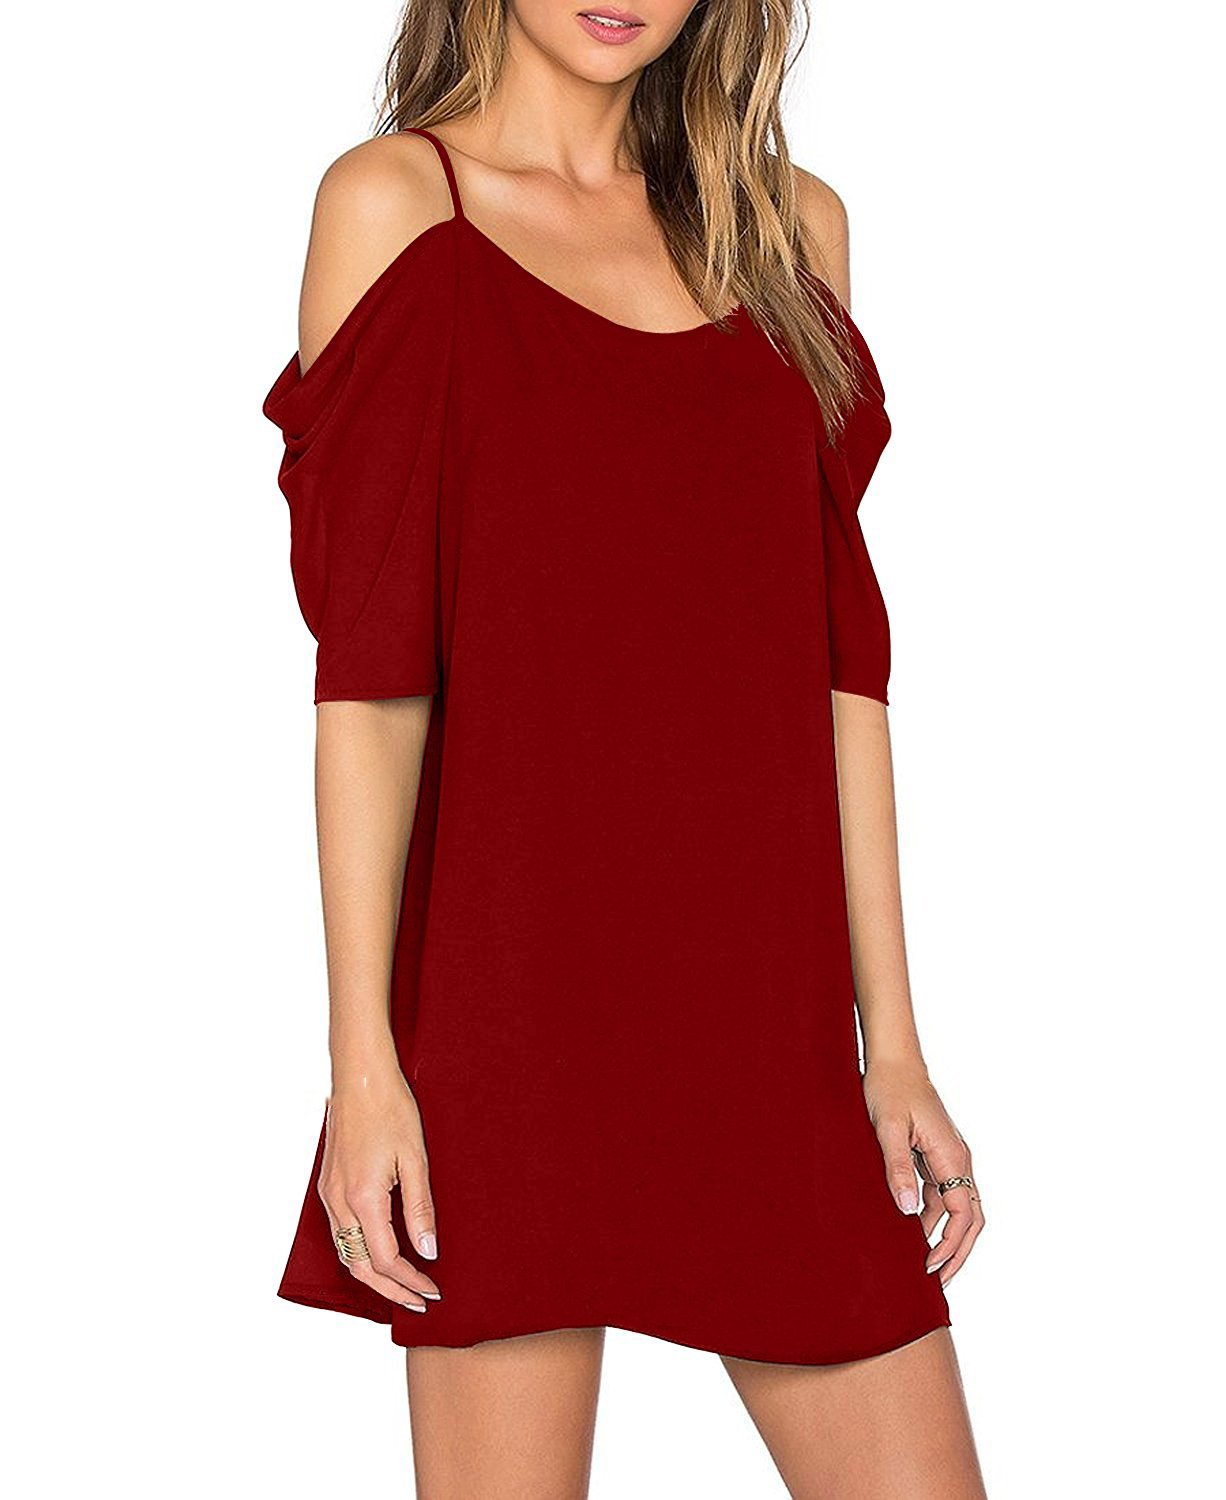 LYXIOF Women's Chiffon Dresses Cut Out Cold Shoulder Trumpet Sleeve Spaghetti Strap Dress Tops Red 2XL